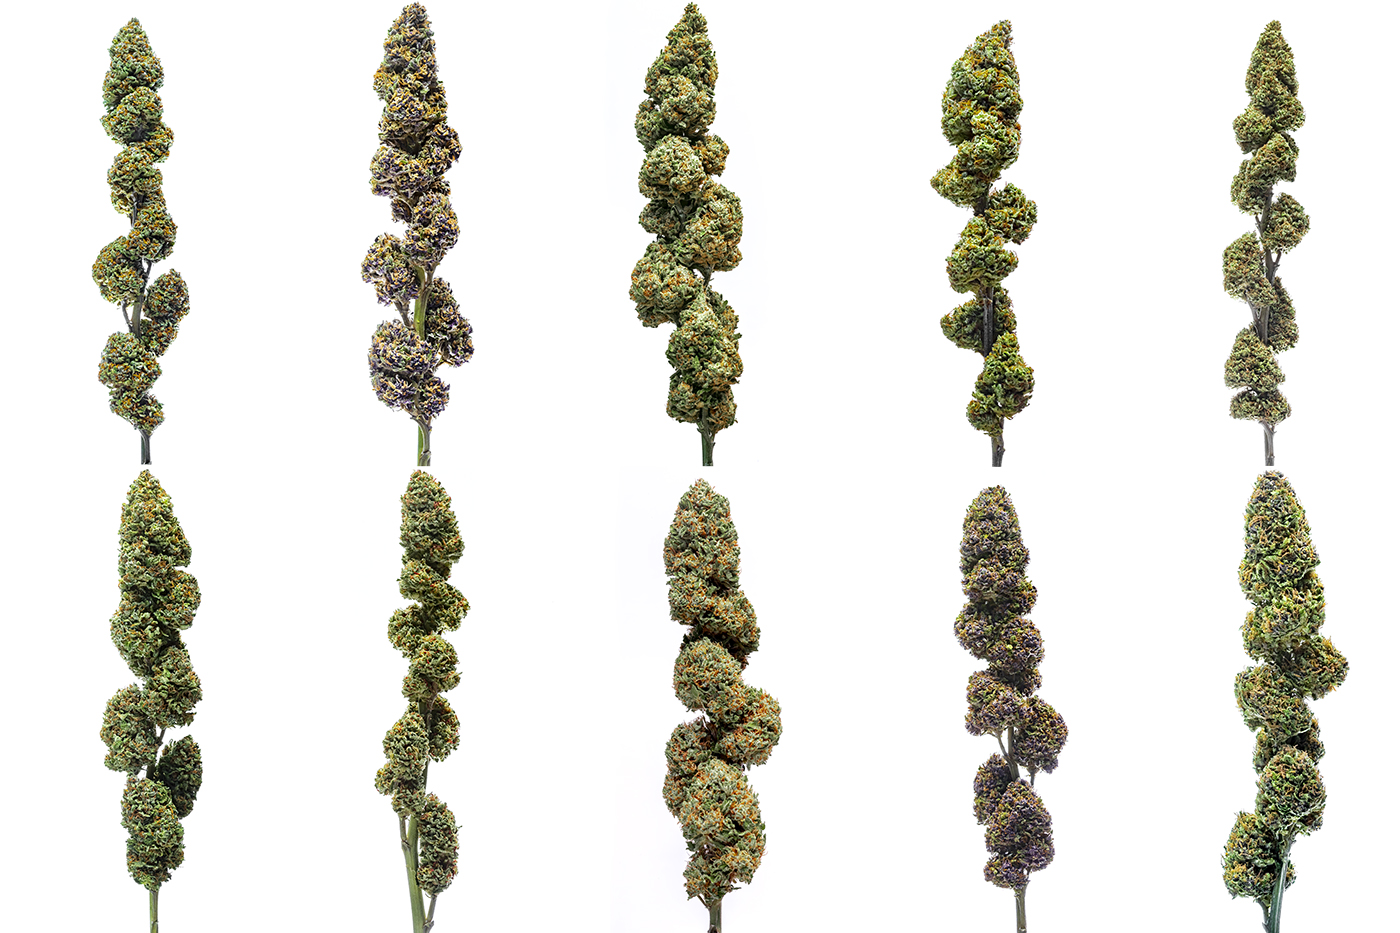 360º degree viewing - Get to know our 26 strains